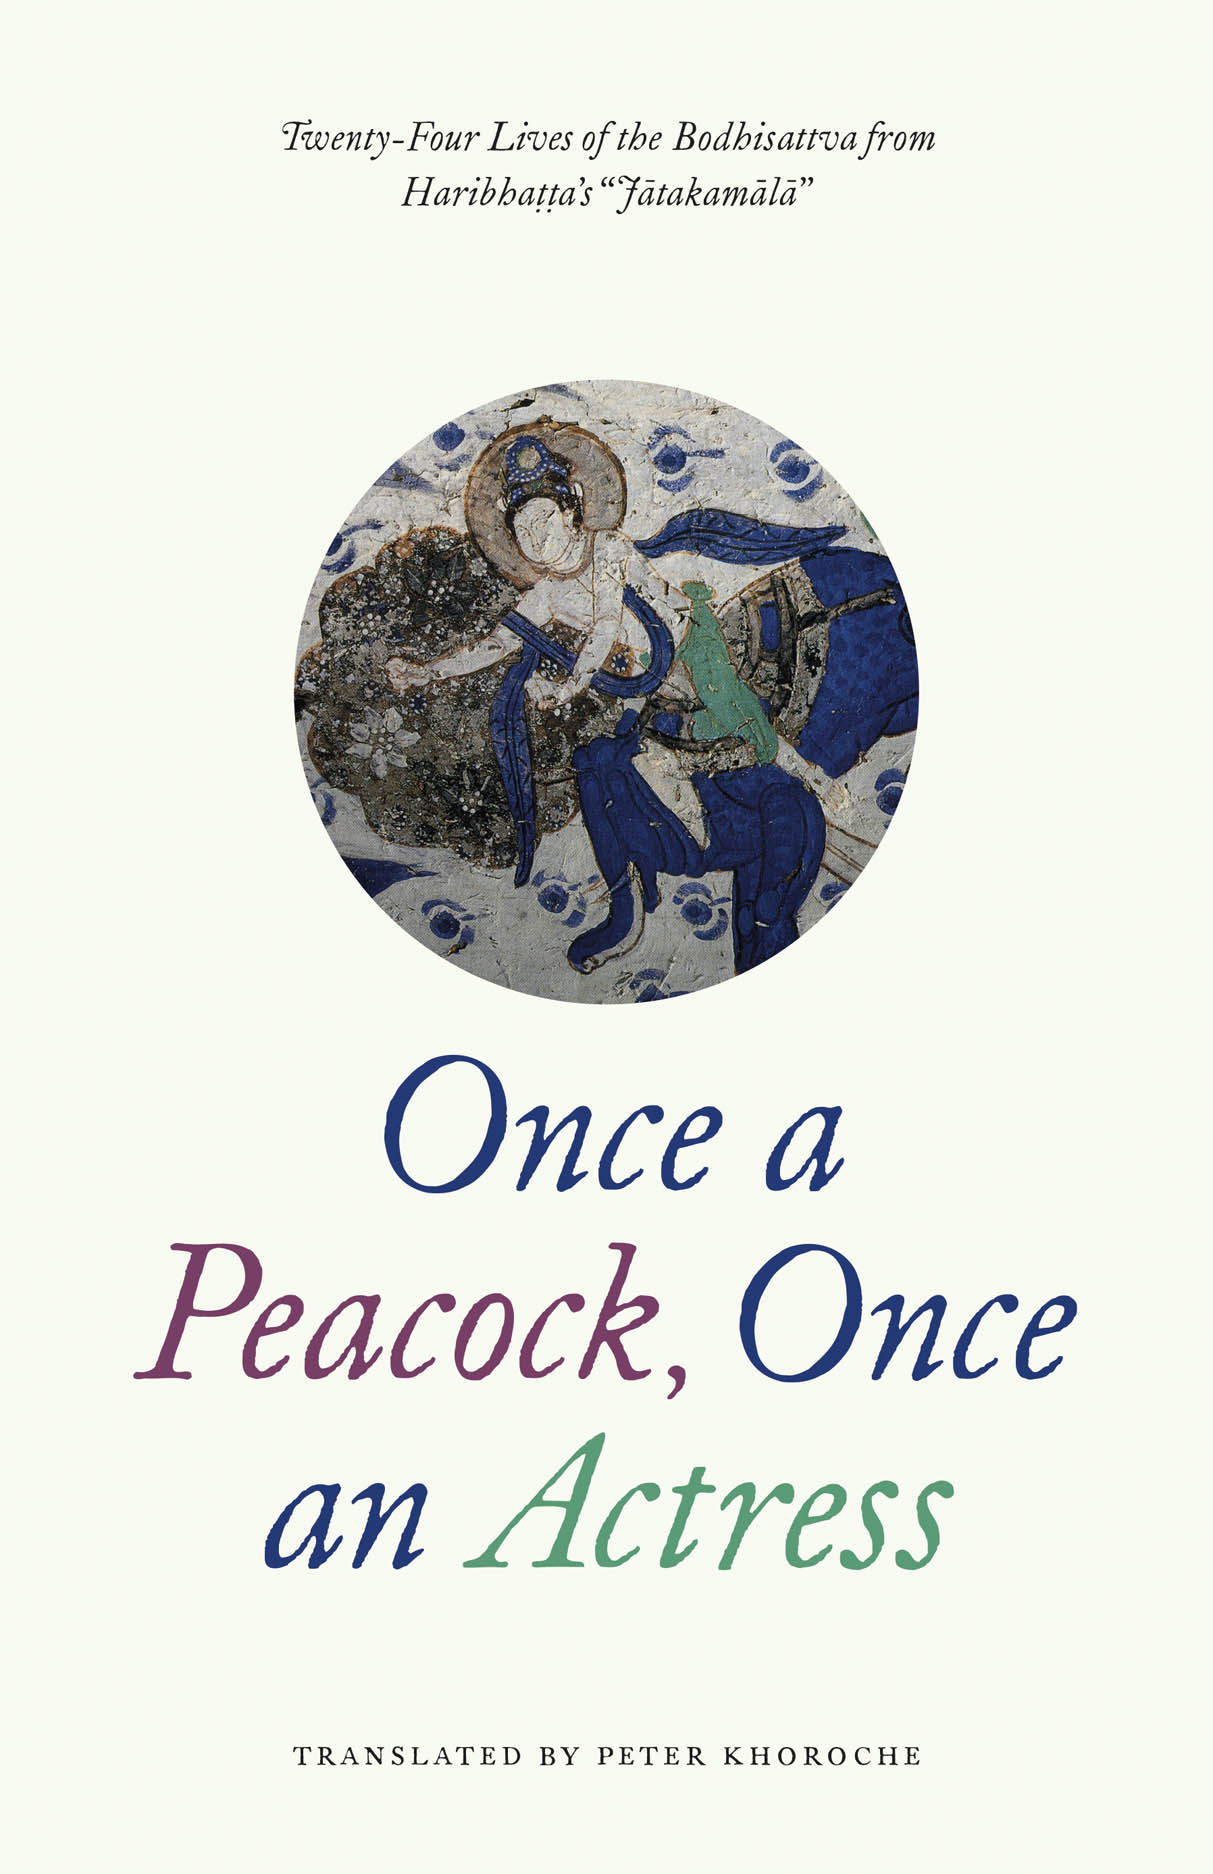 Once a Peacock, Once an Actress: Twenty-Four Lives of the Bodhisattva from Haribhatta's